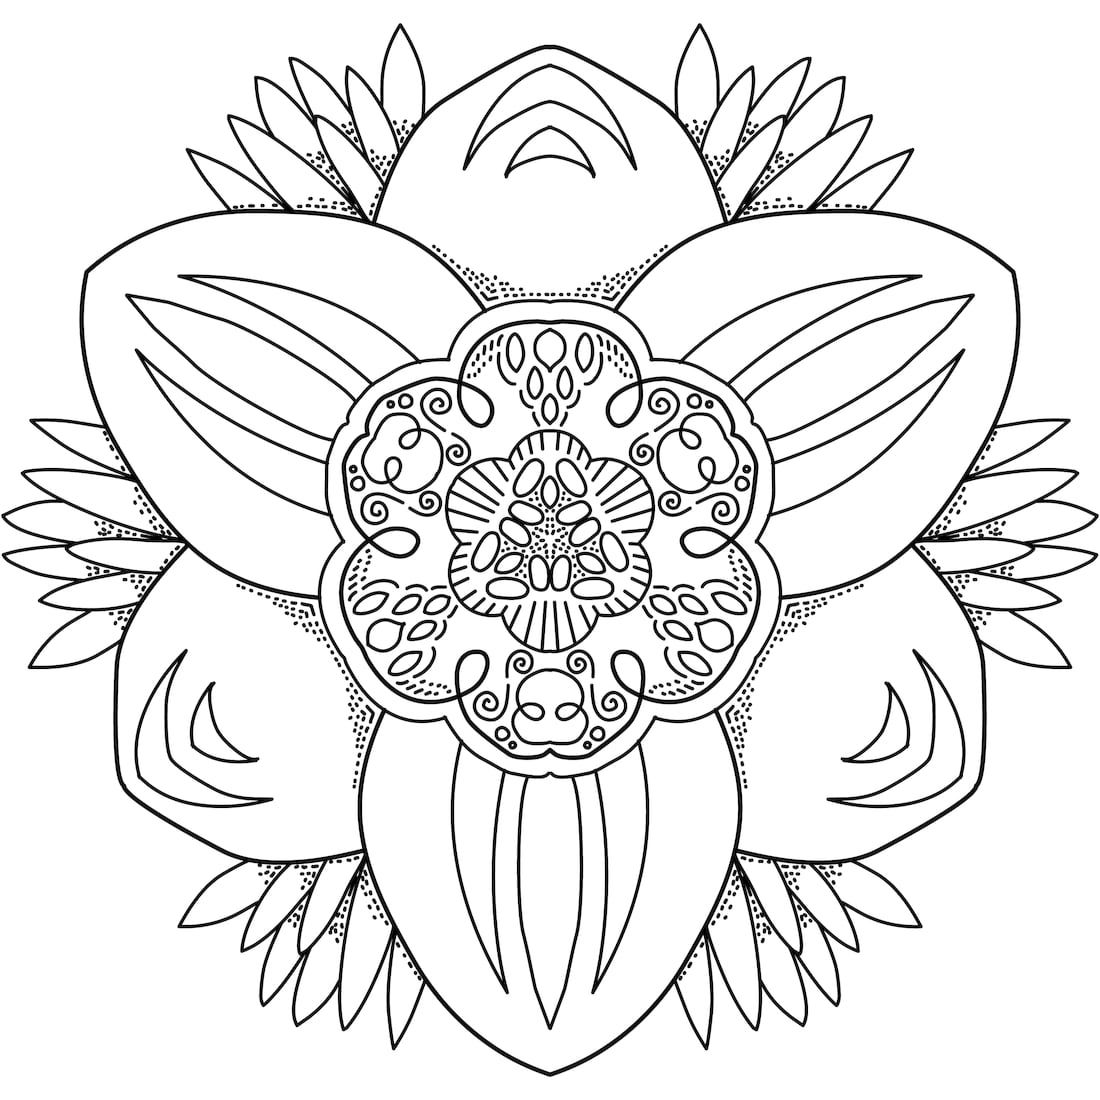 Mystery Orchid Coloring Page Coloring Pages Adult Coloring